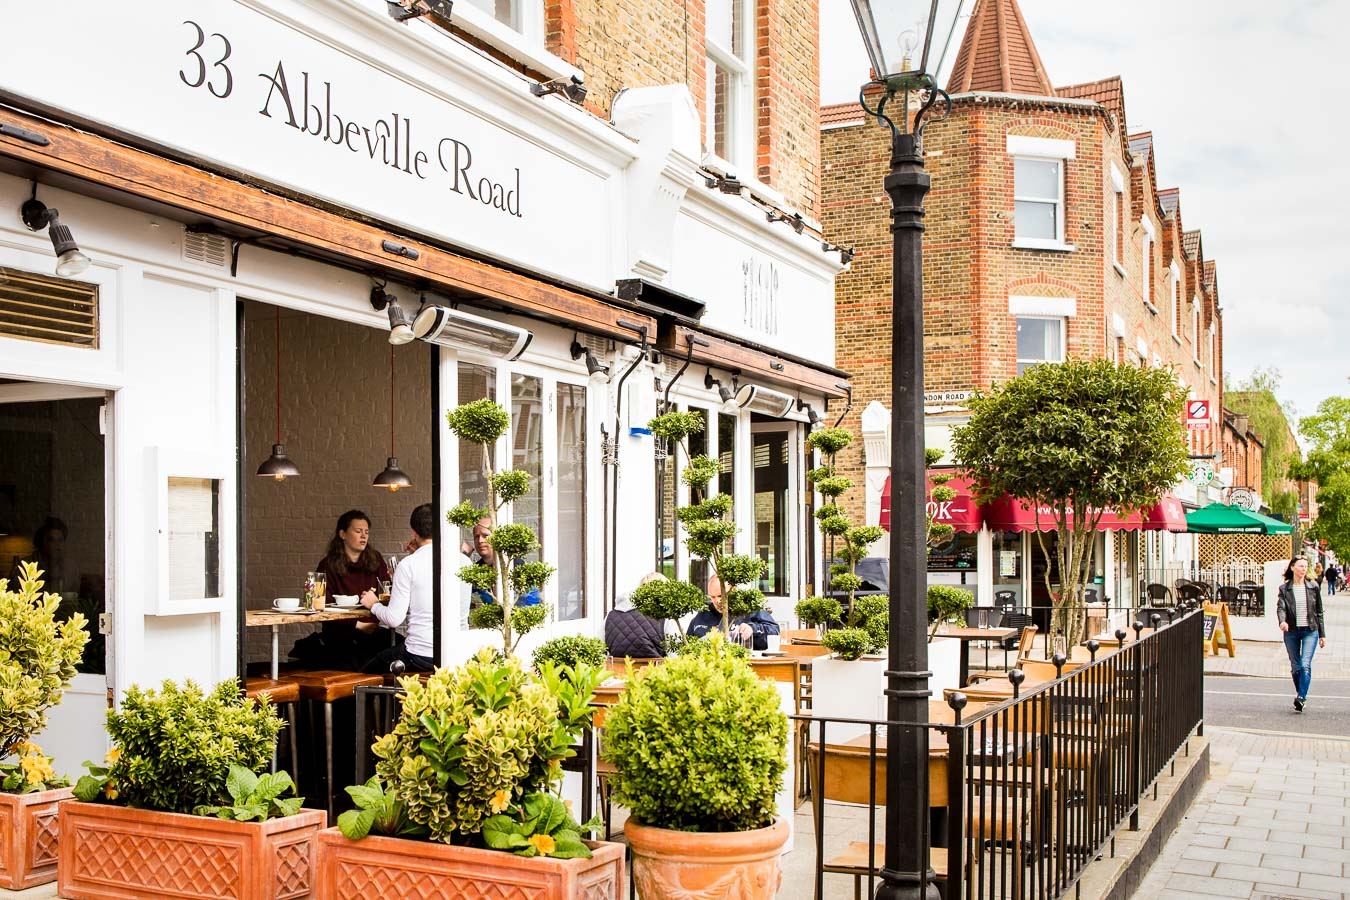 Front street scene of a bistro called 33 Abbeville Road, showing the patio and diners eating outside and inside